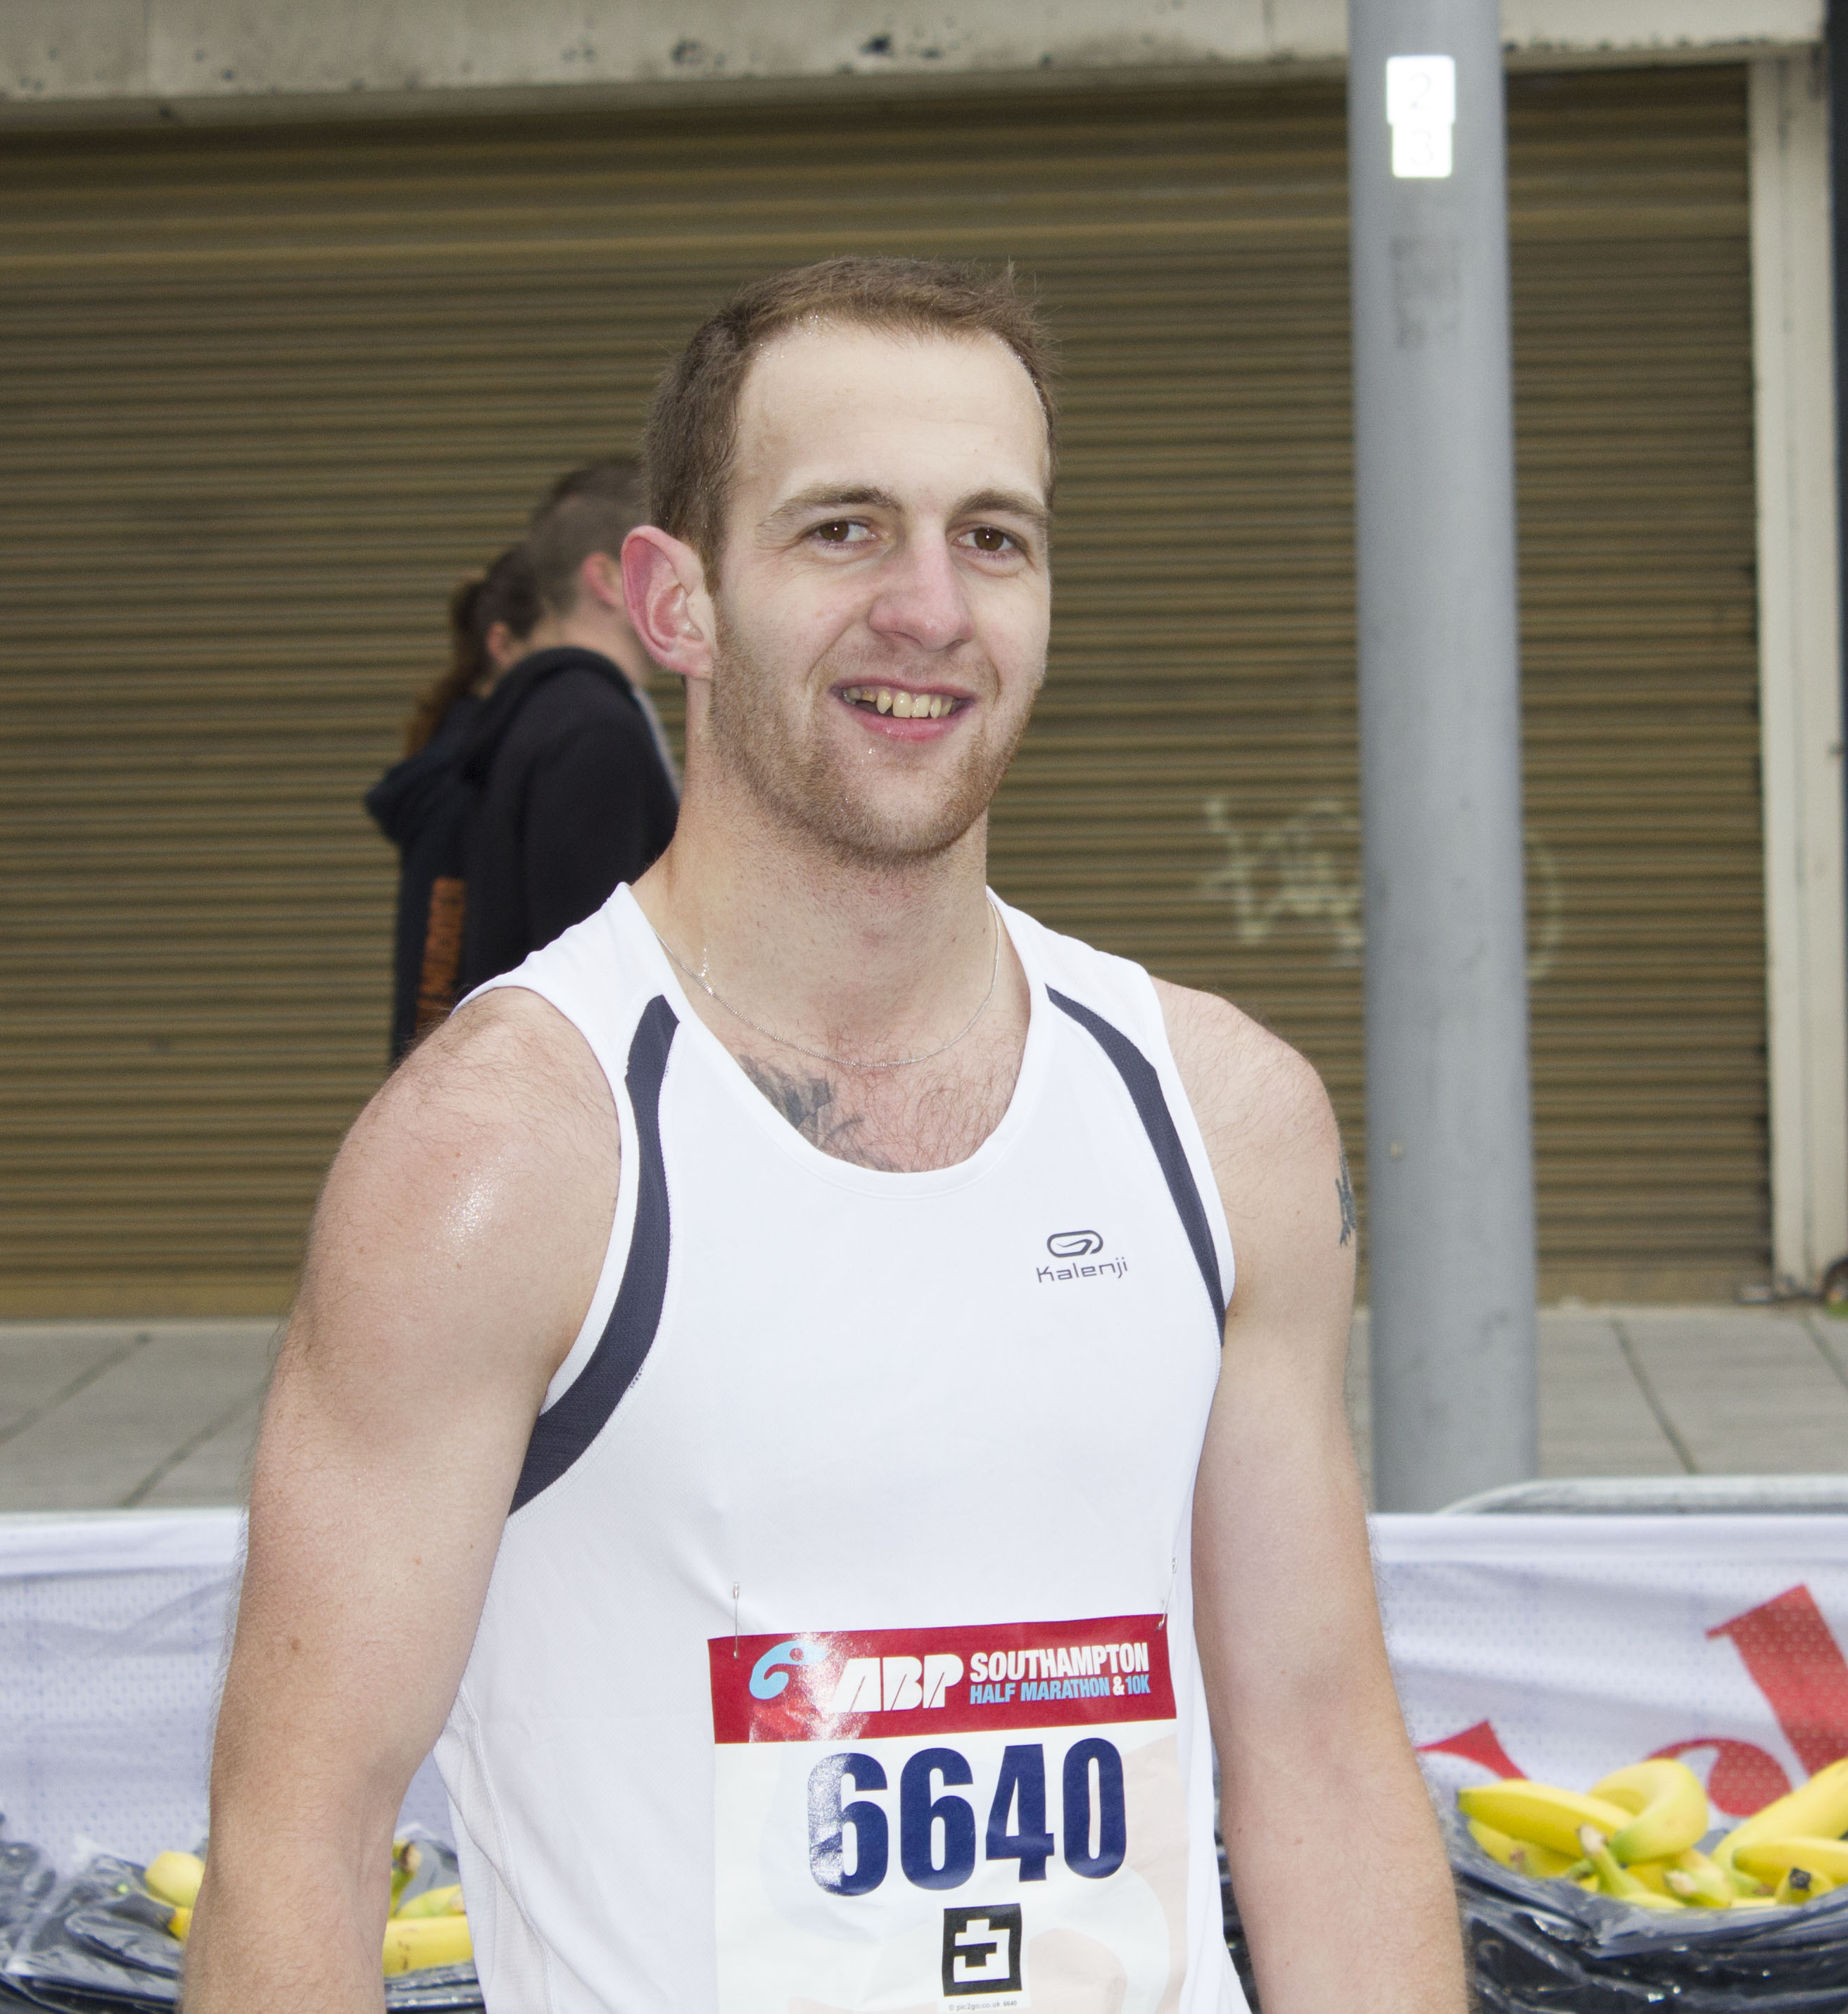 Southampton's first 10km race raised money for local charities